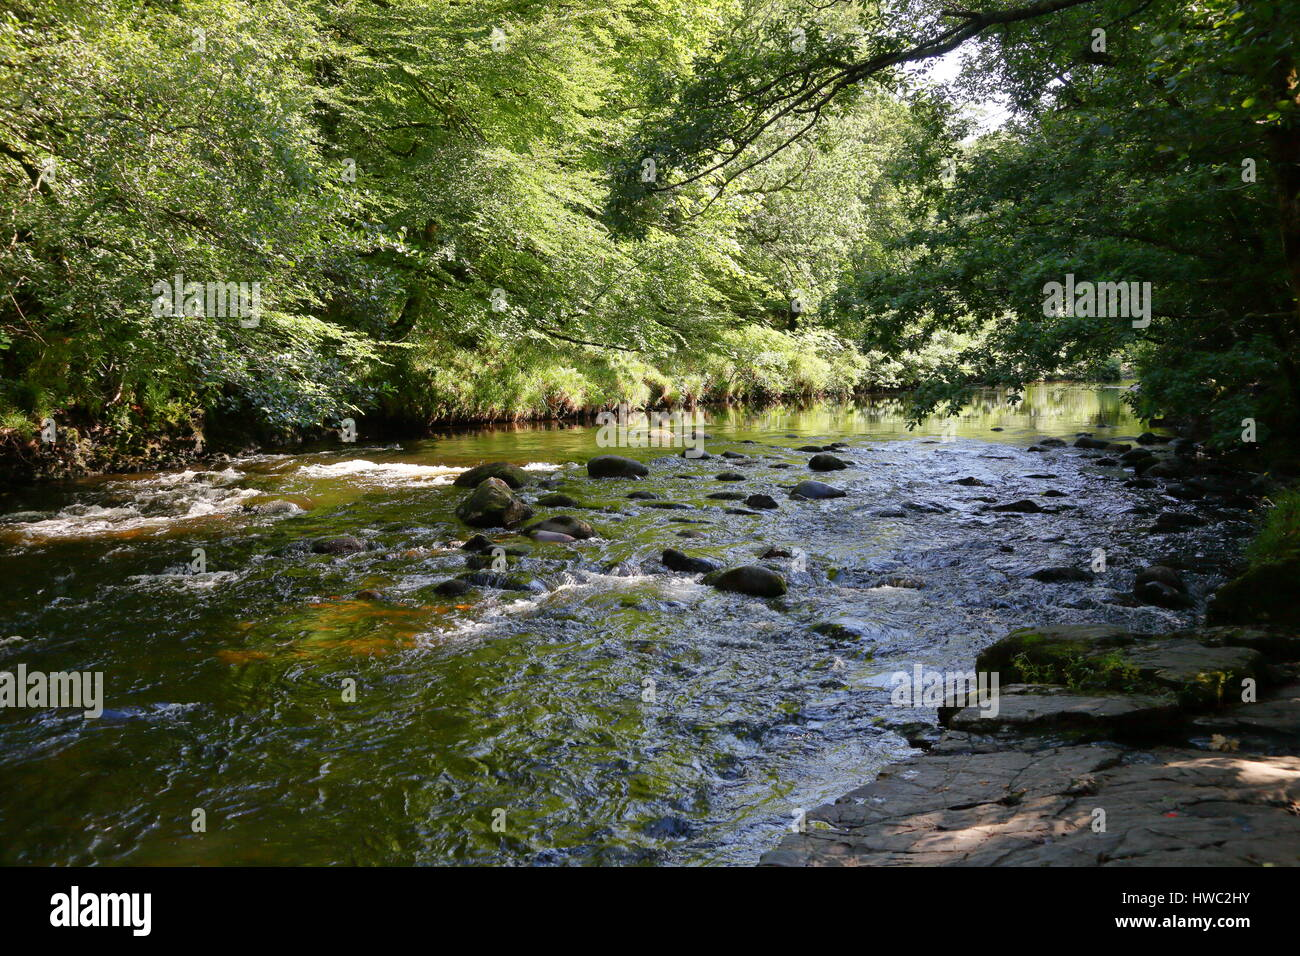 Reflections and water flowing over rocks in River Dart at New Bridge near Ashburton Devon UK - Stock Image